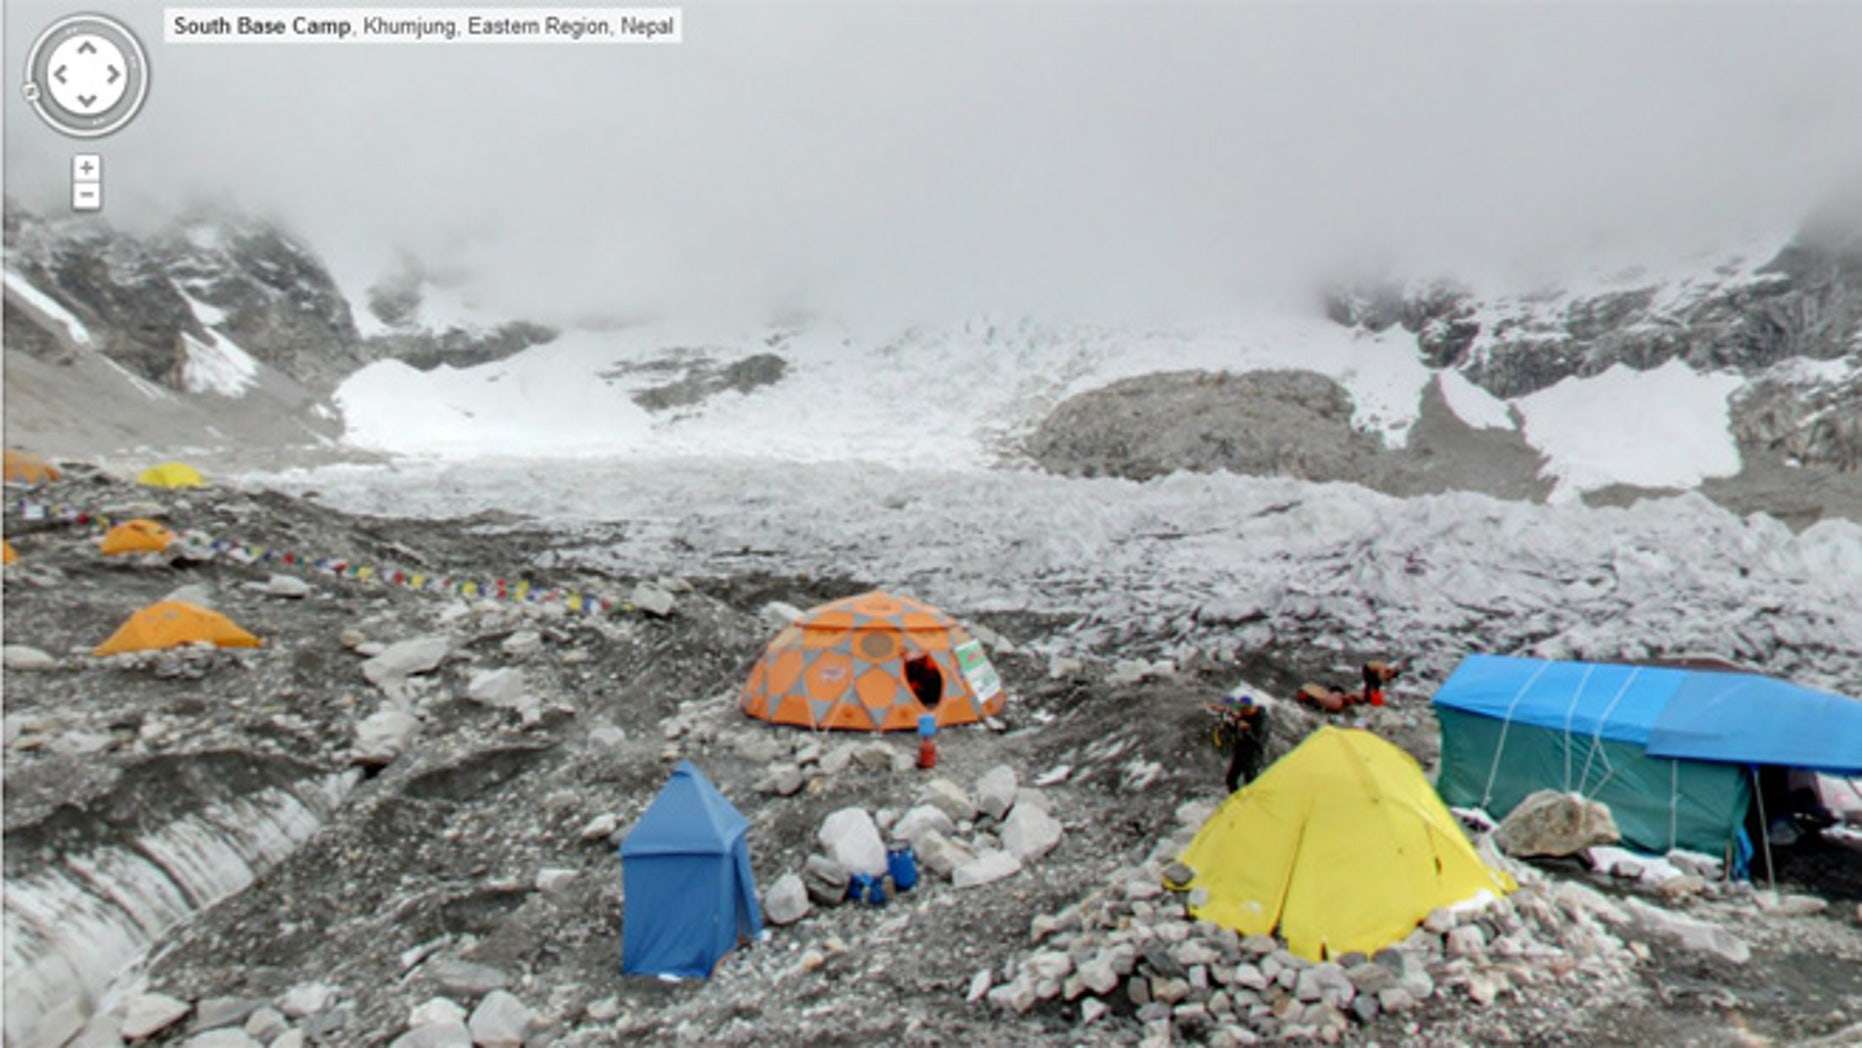 Hanging out at the Everest Base Camp courtesy of Google Street View.